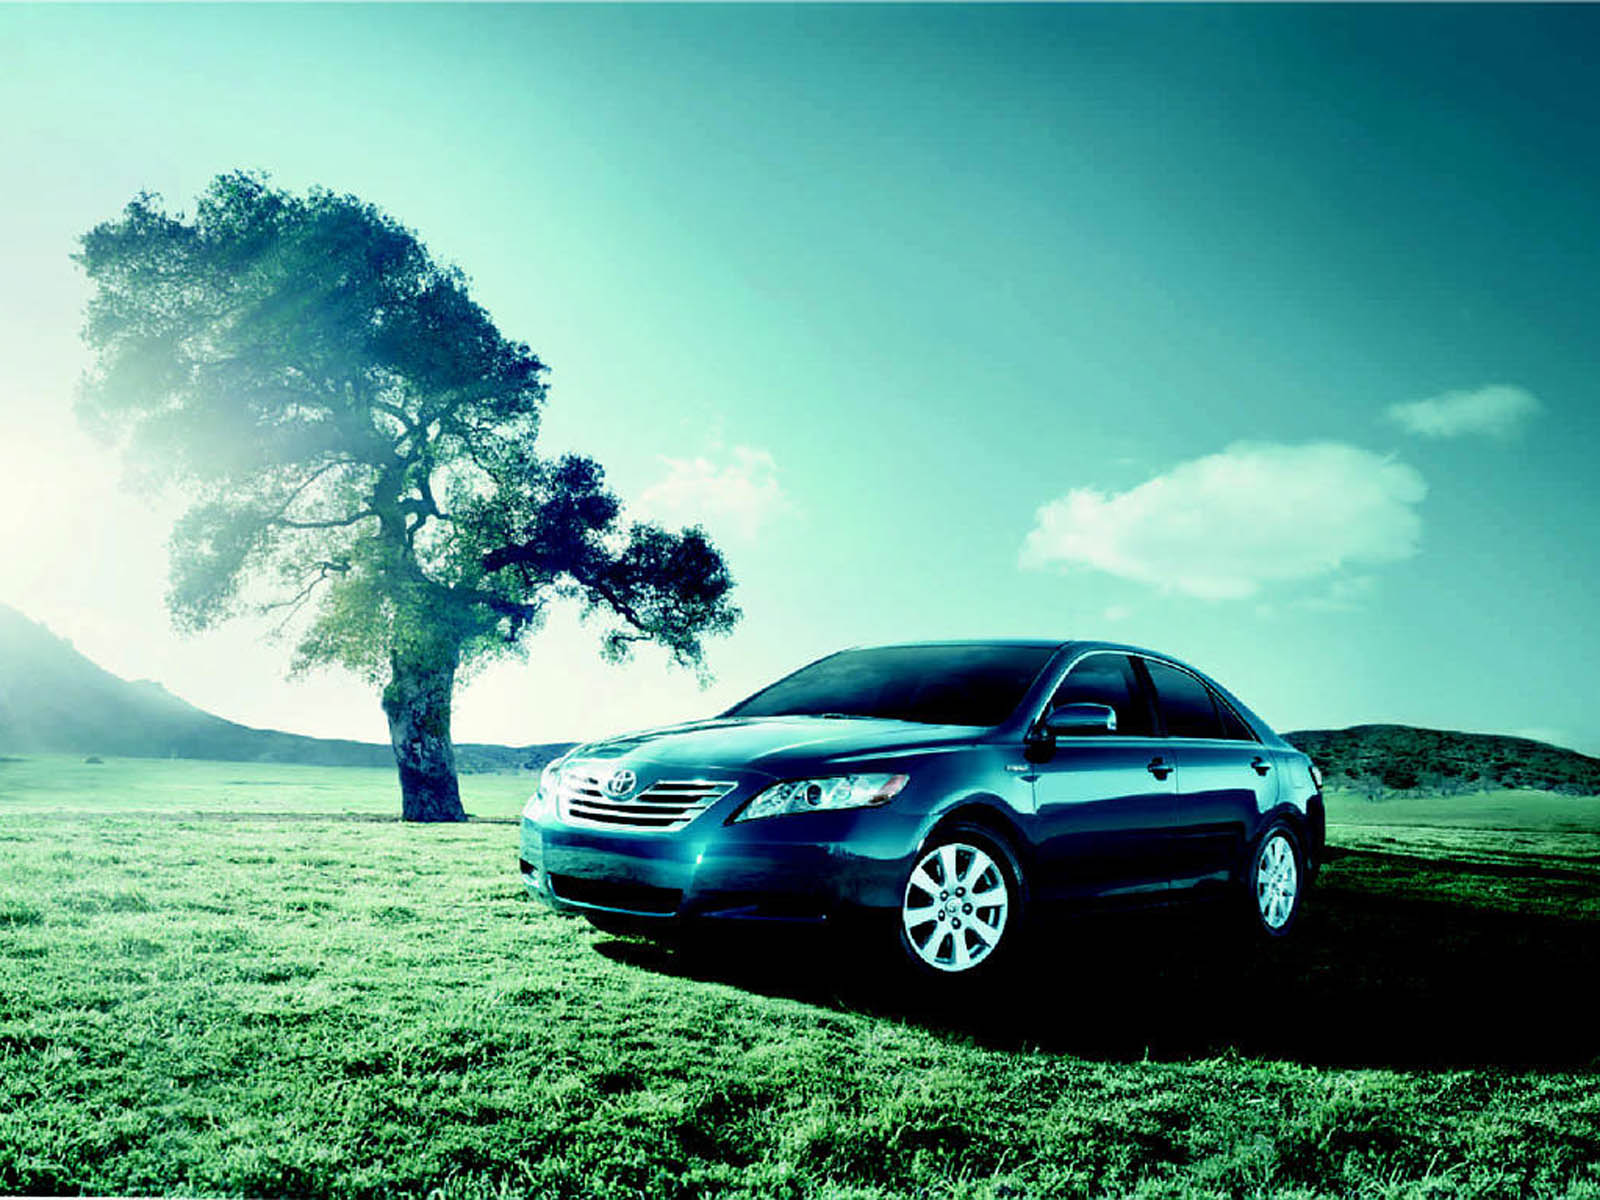 toyota camry car wallpapers 7